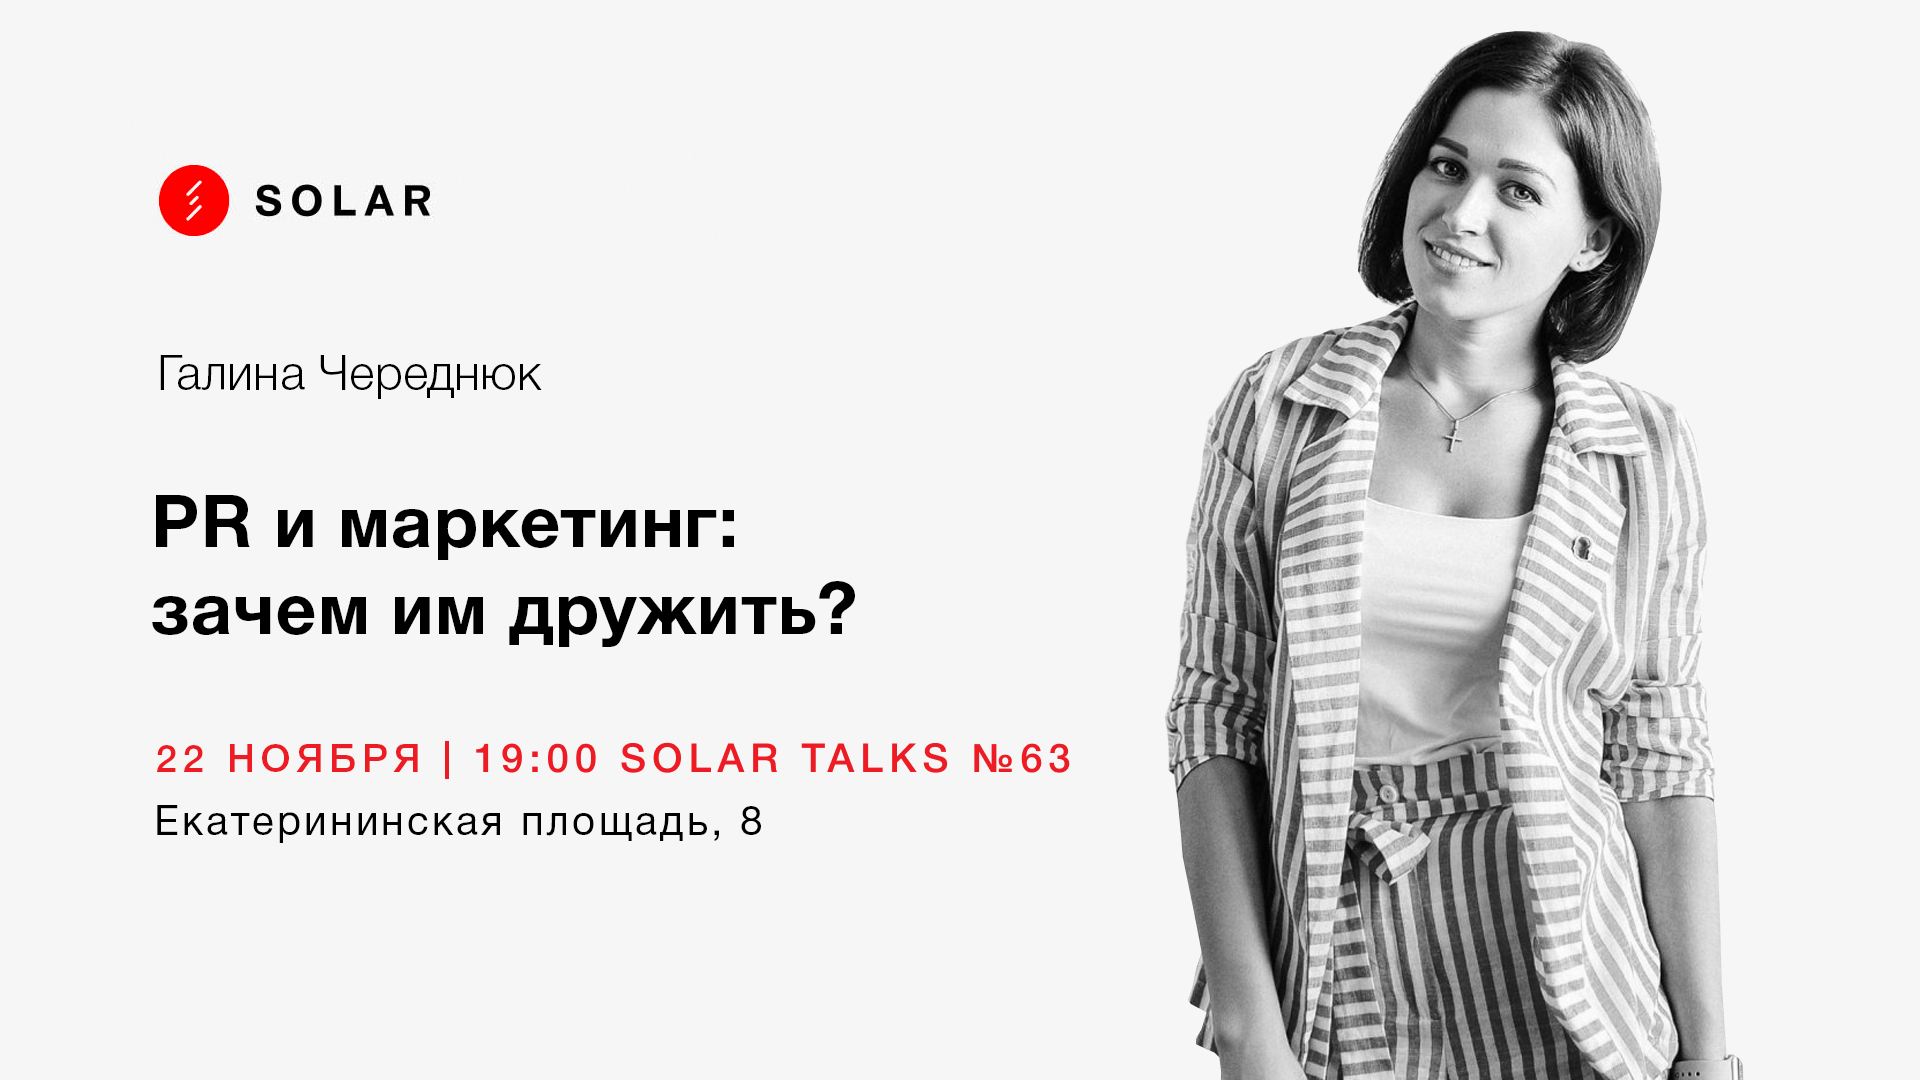 talks image